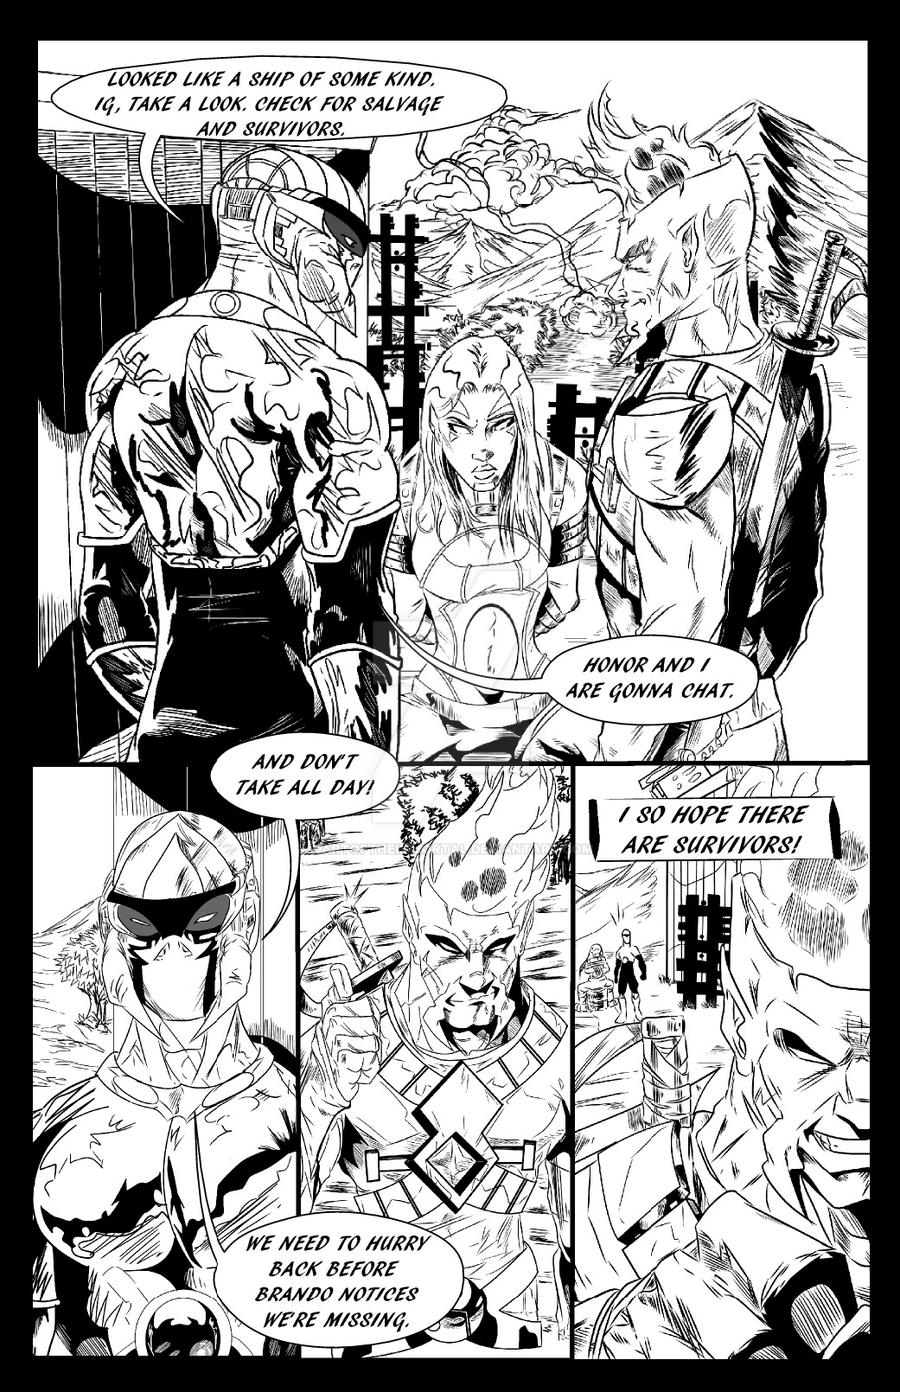 Conquest Issue 2 page 4 by artoftheimmortal